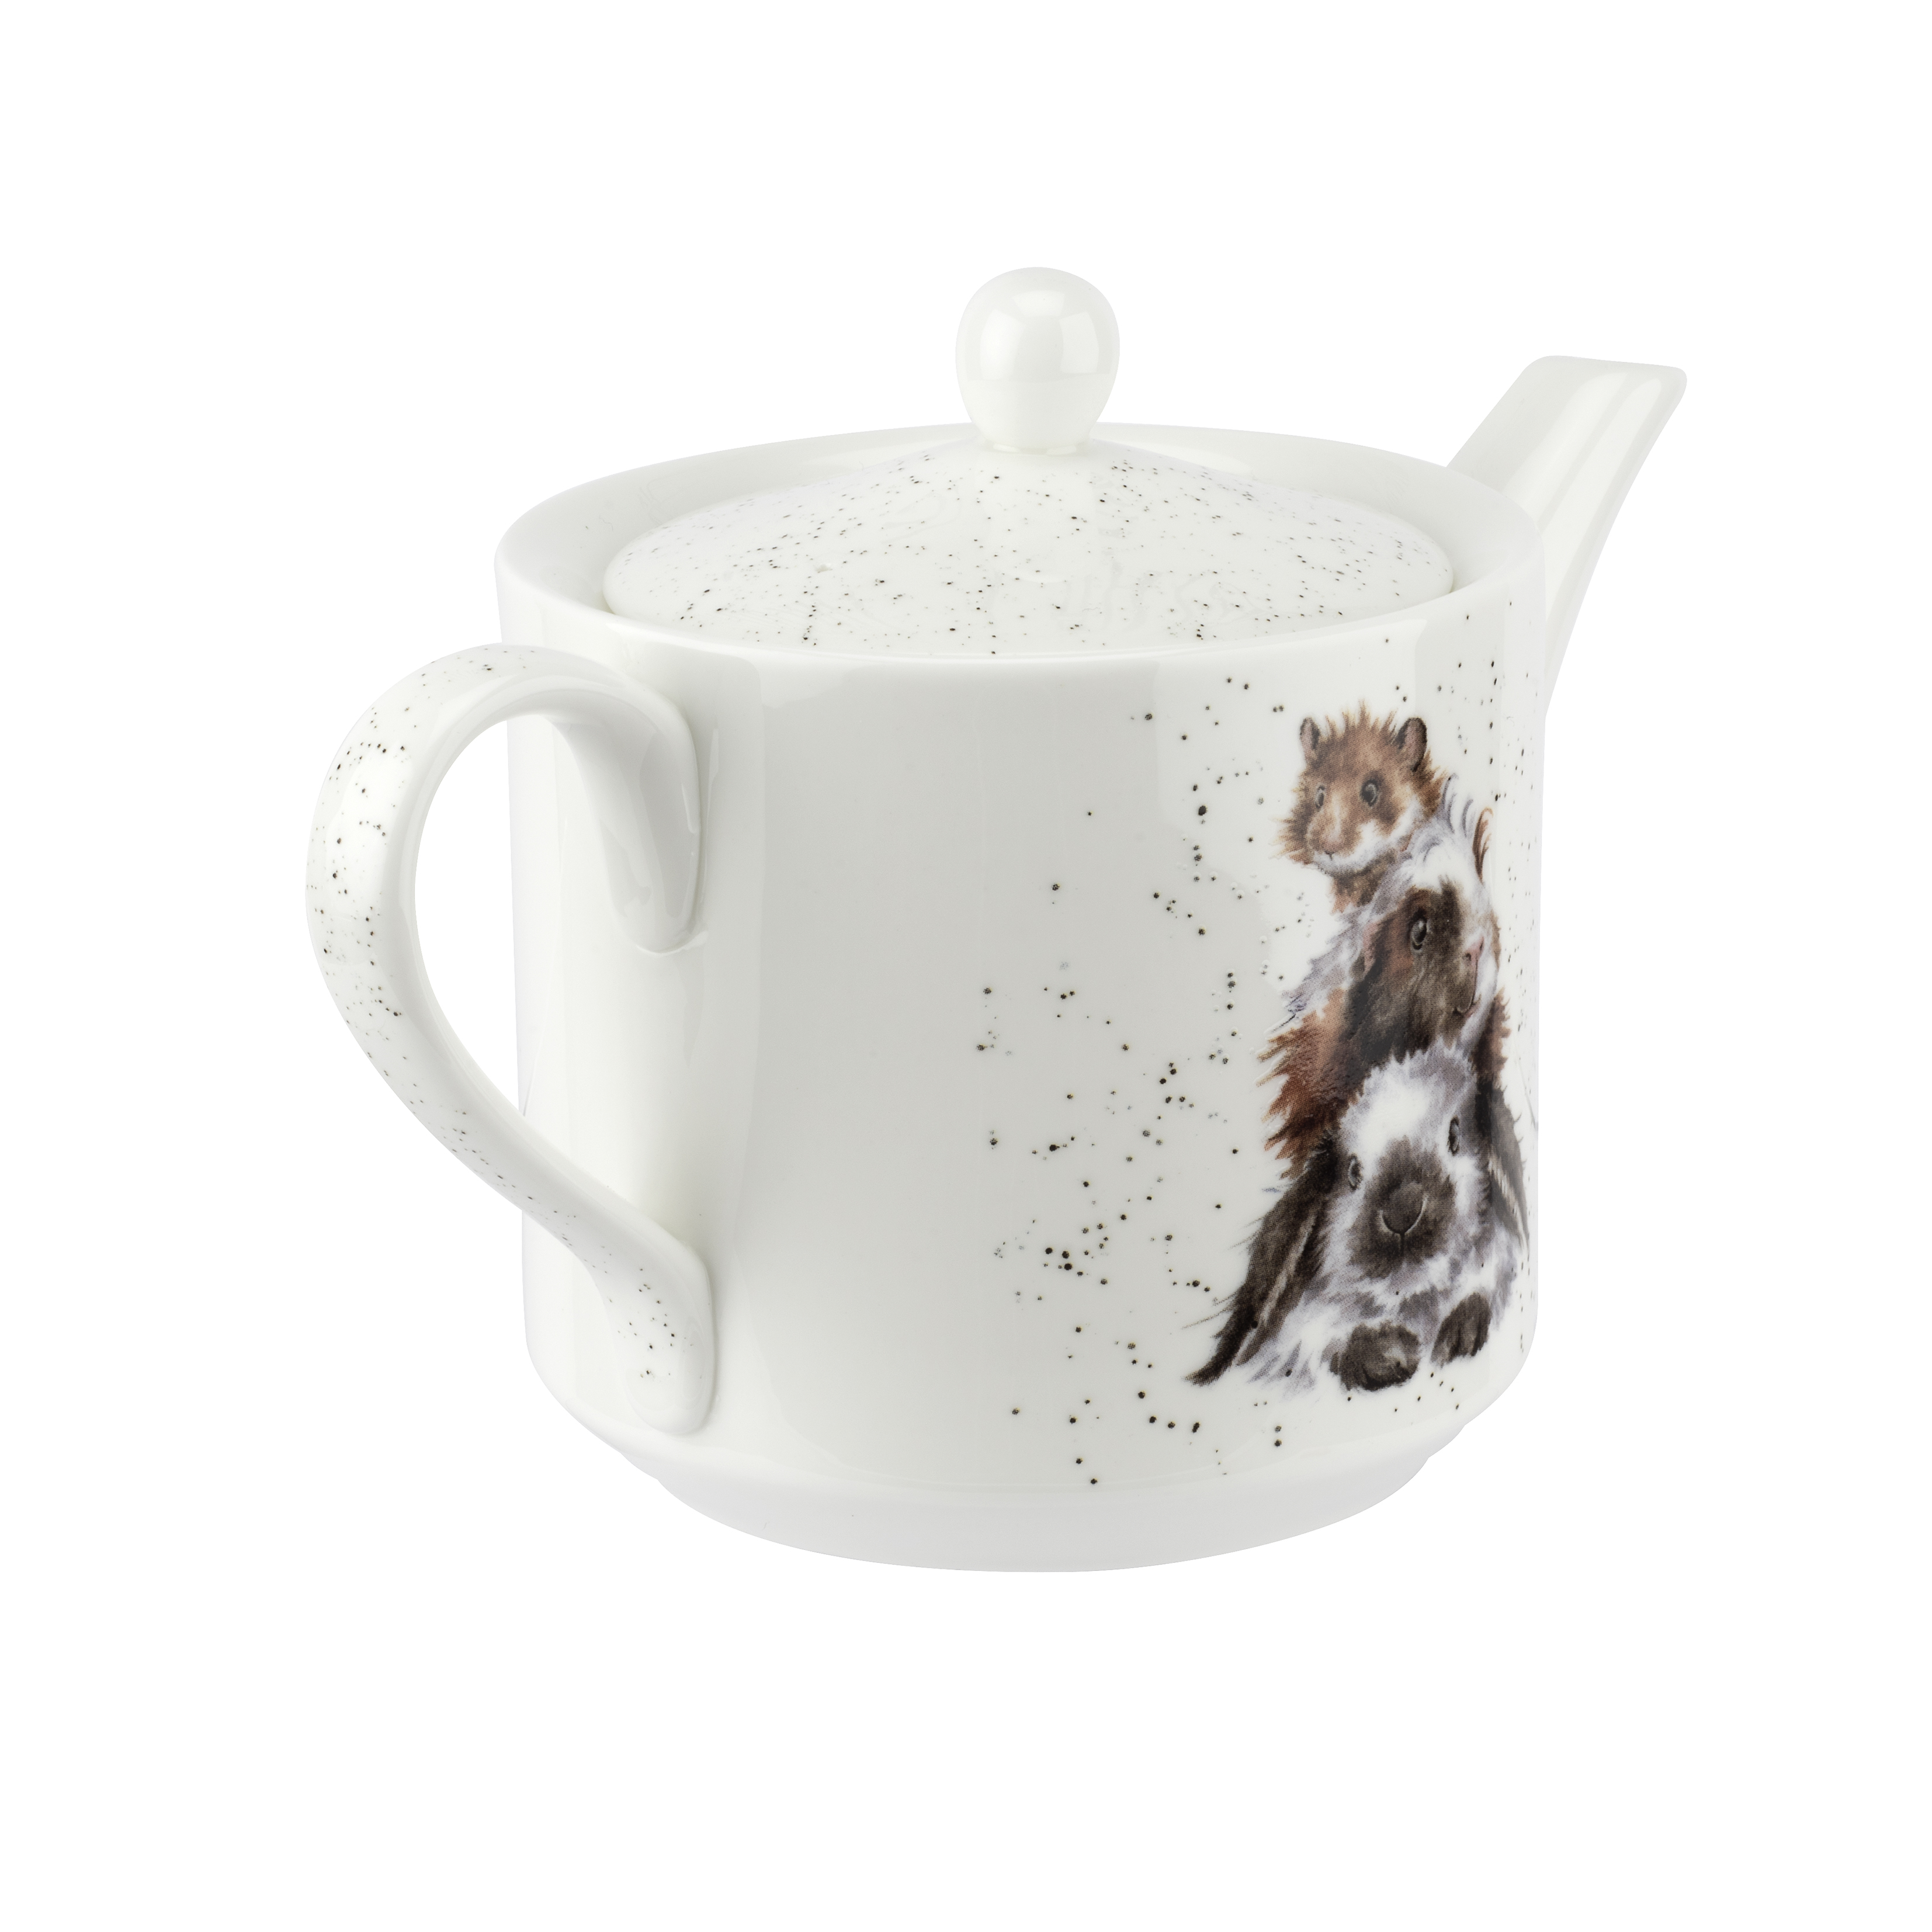 Royal Worcester Wrendale Designs Teapot 1 Pint (Piggy In The Middle) image number 2